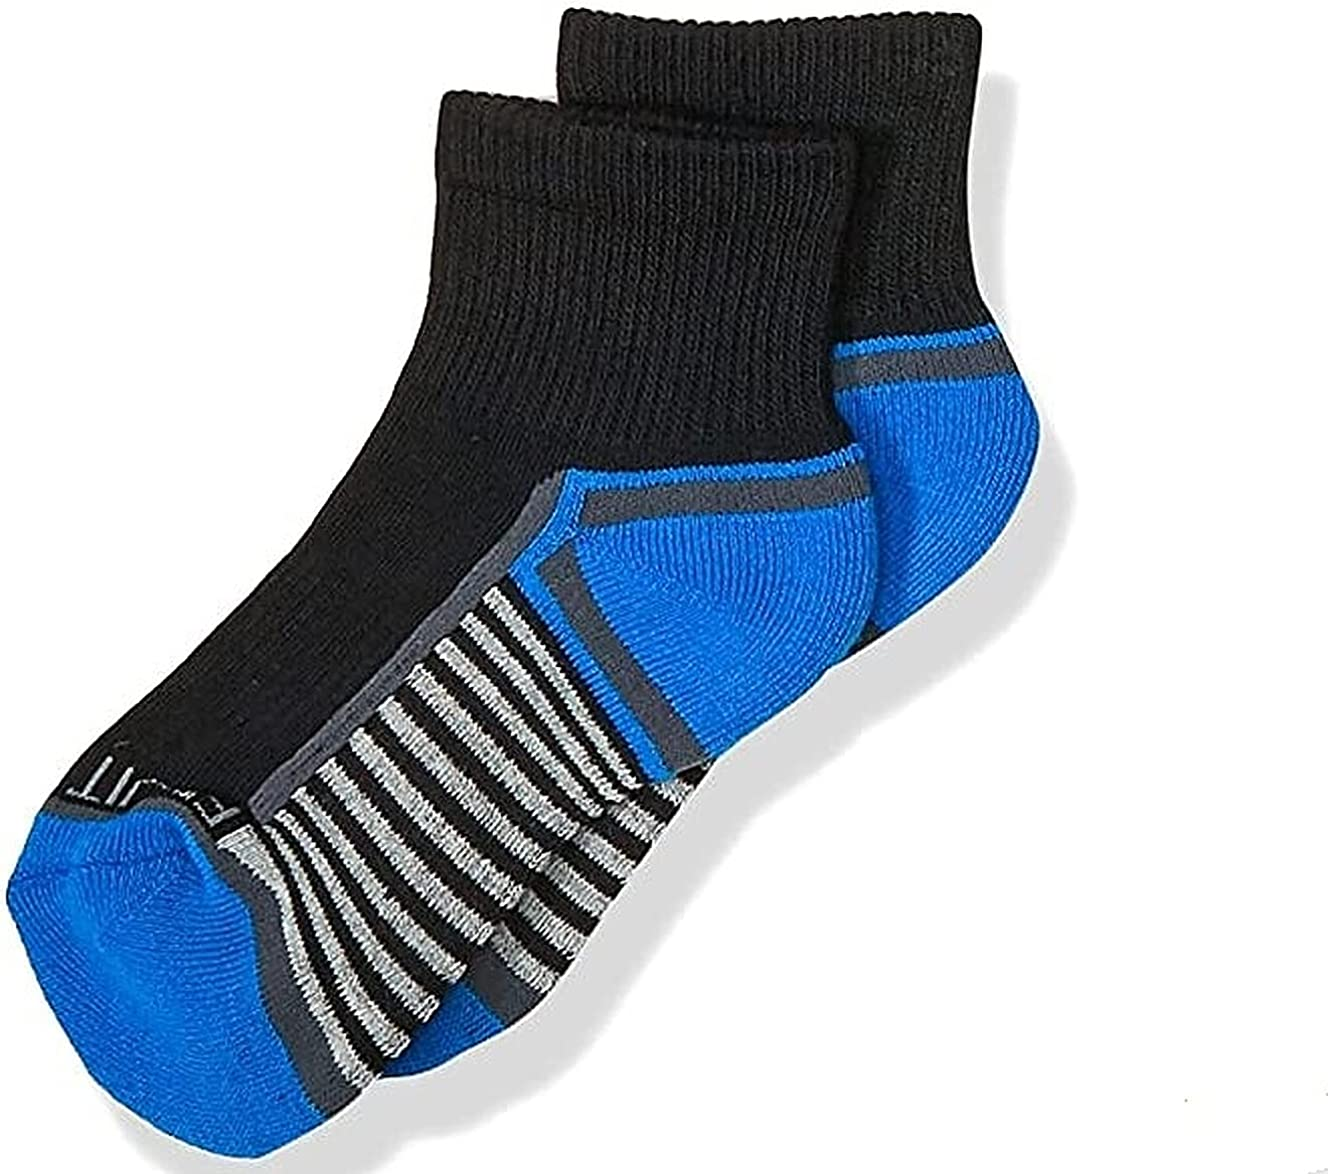 Fruit Of The Loom Boys Everyday Cushioned Ankle Socks - 13-Pack, Black Assorted, 3-9